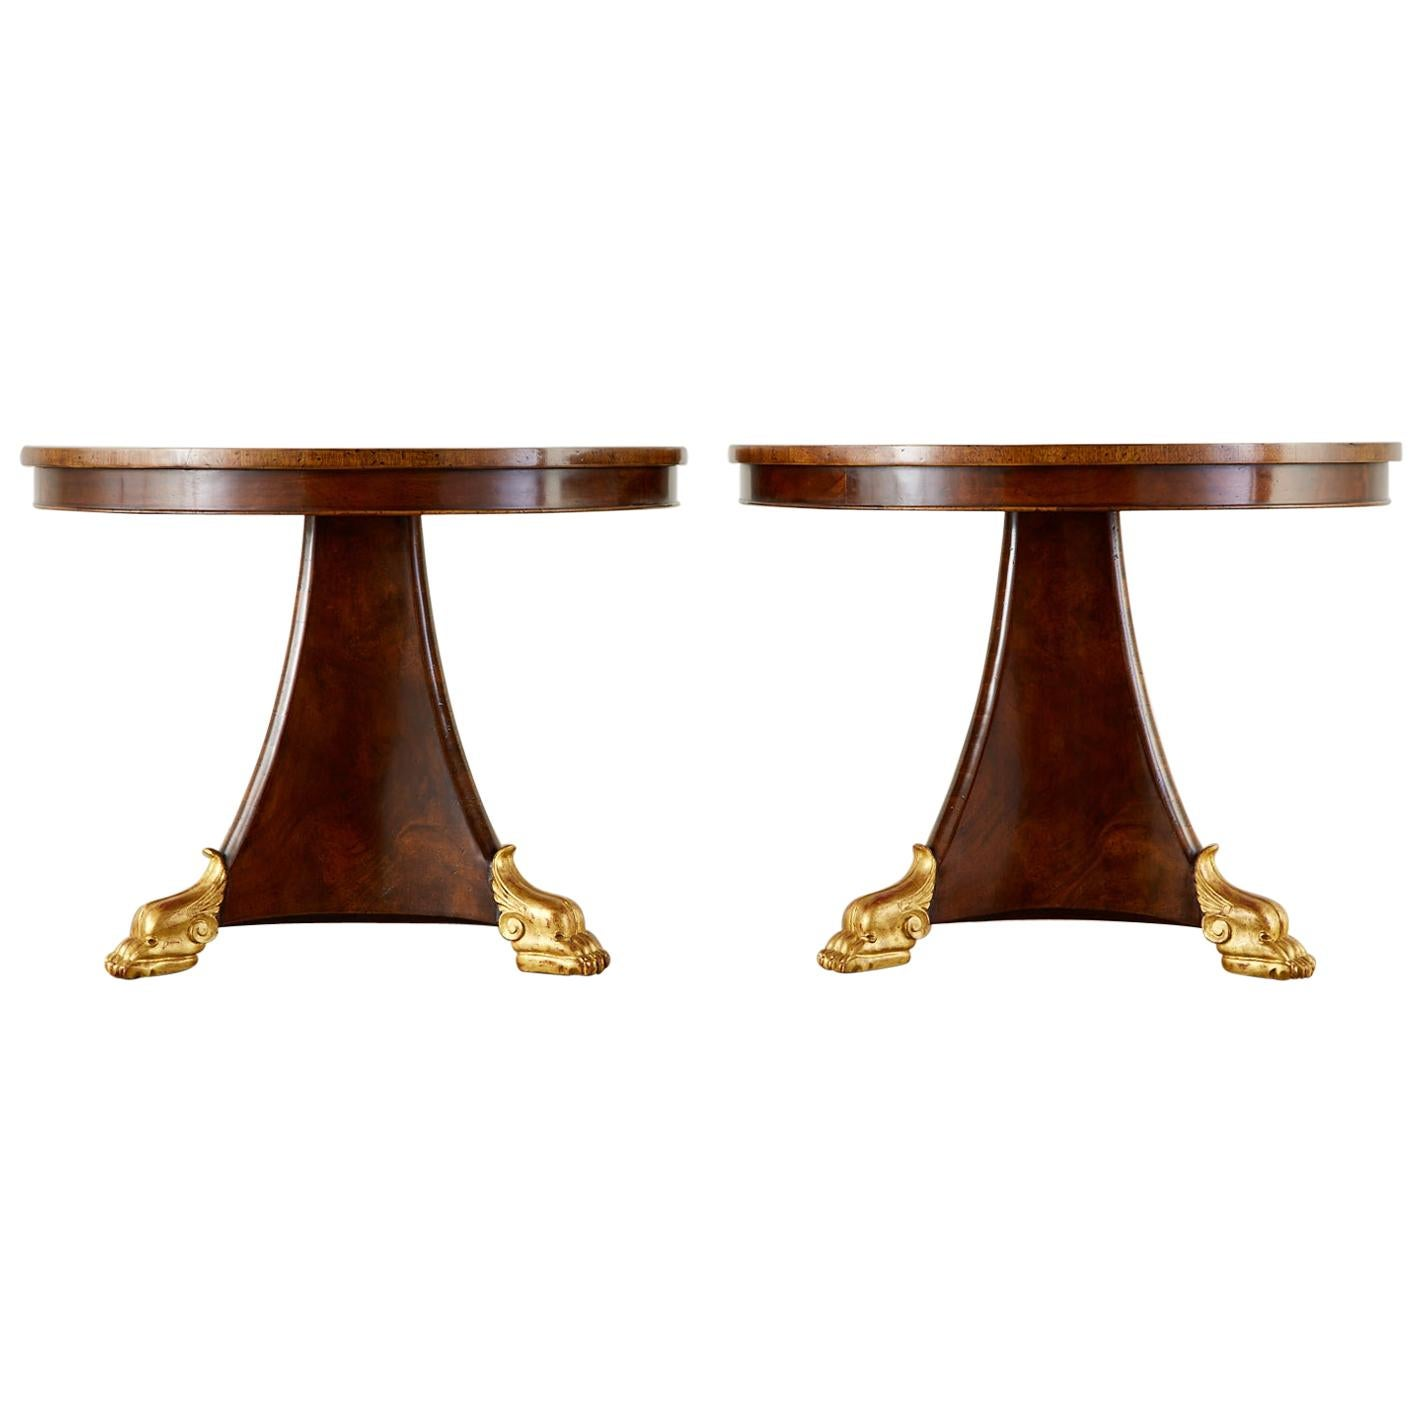 Pair of English Regency Style Burl Wood Library or Center Tables